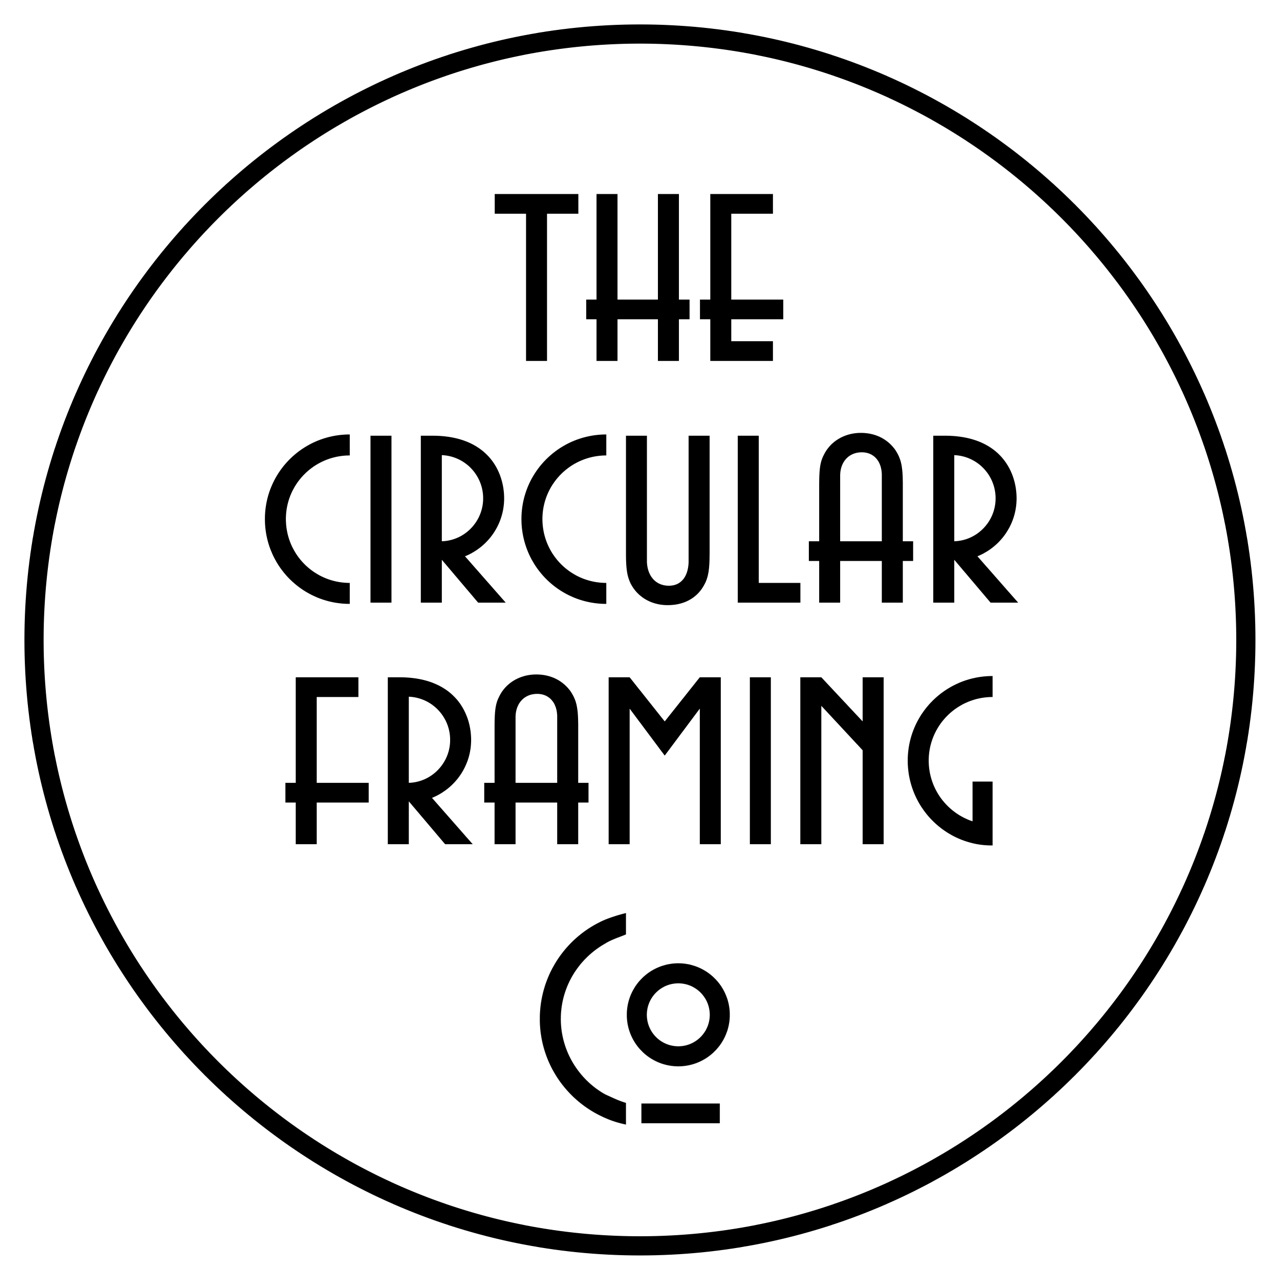 The Circular Framing Company